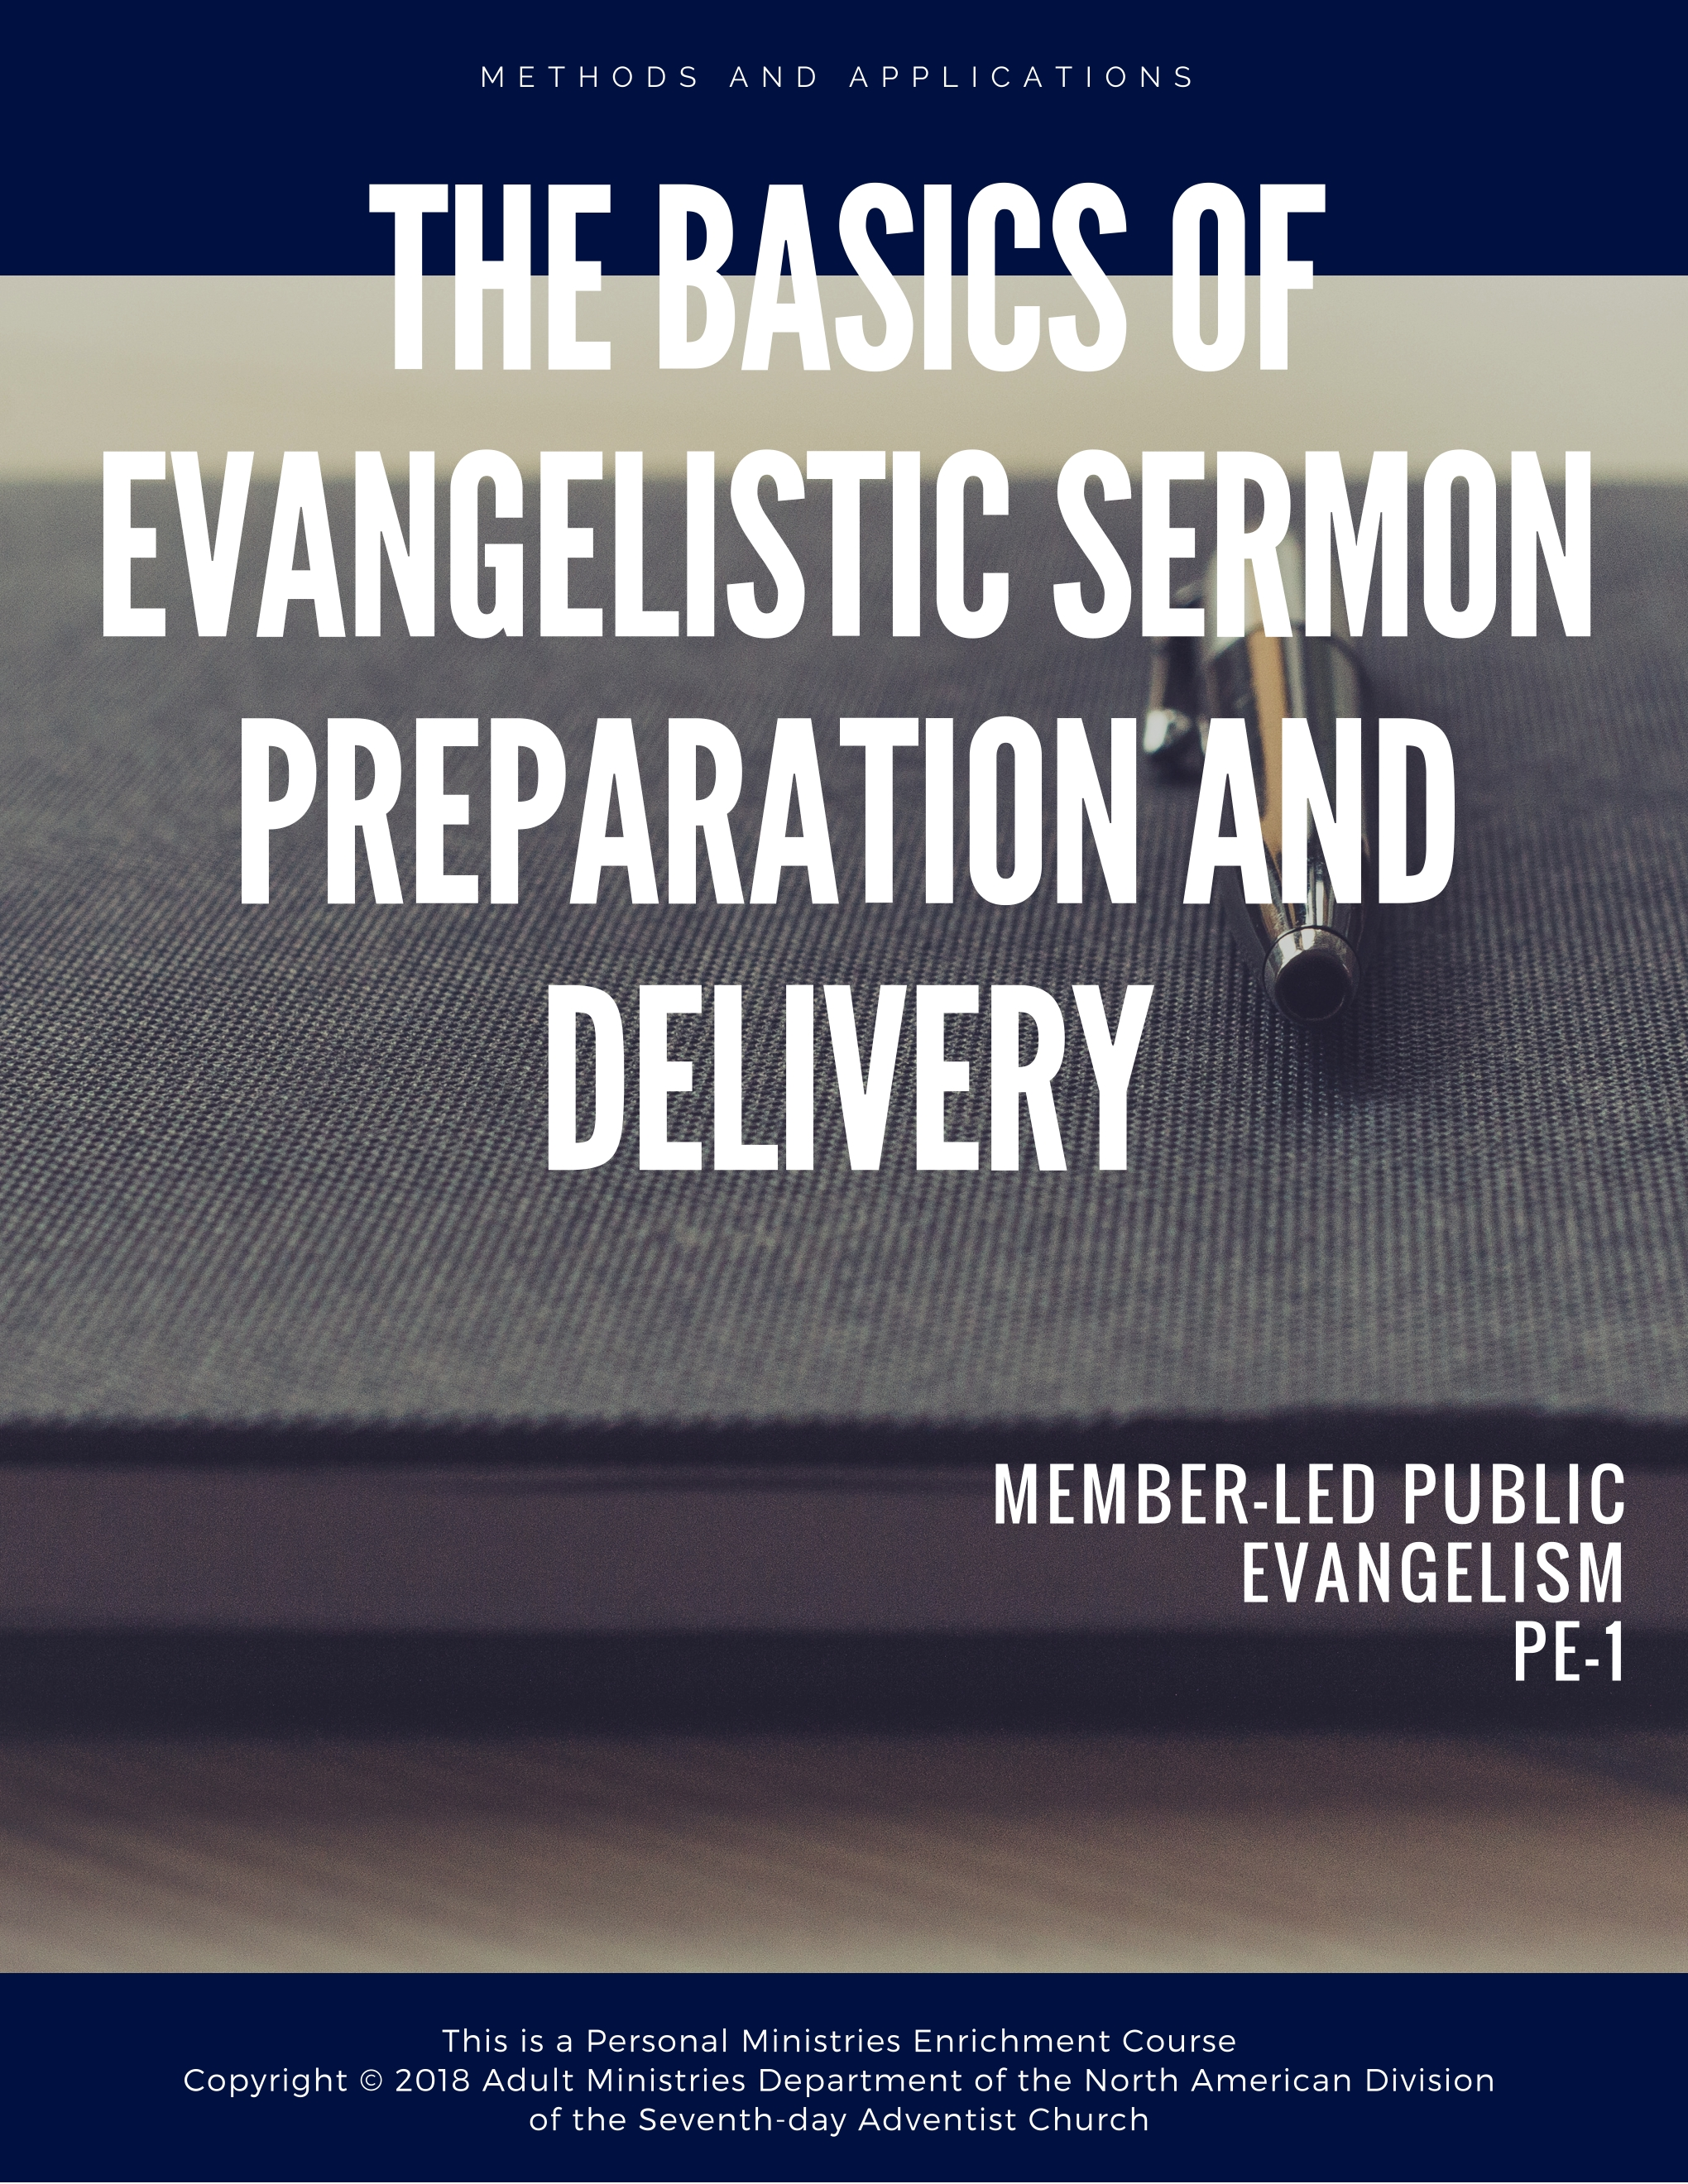 The personal ministries participant will examine and acquire a knowledge and understanding of the basic rules of evangelistic sermon preparation and will be to apply these rules in the development and presentation of evangelistic sermons. - Click the cover to view>>>